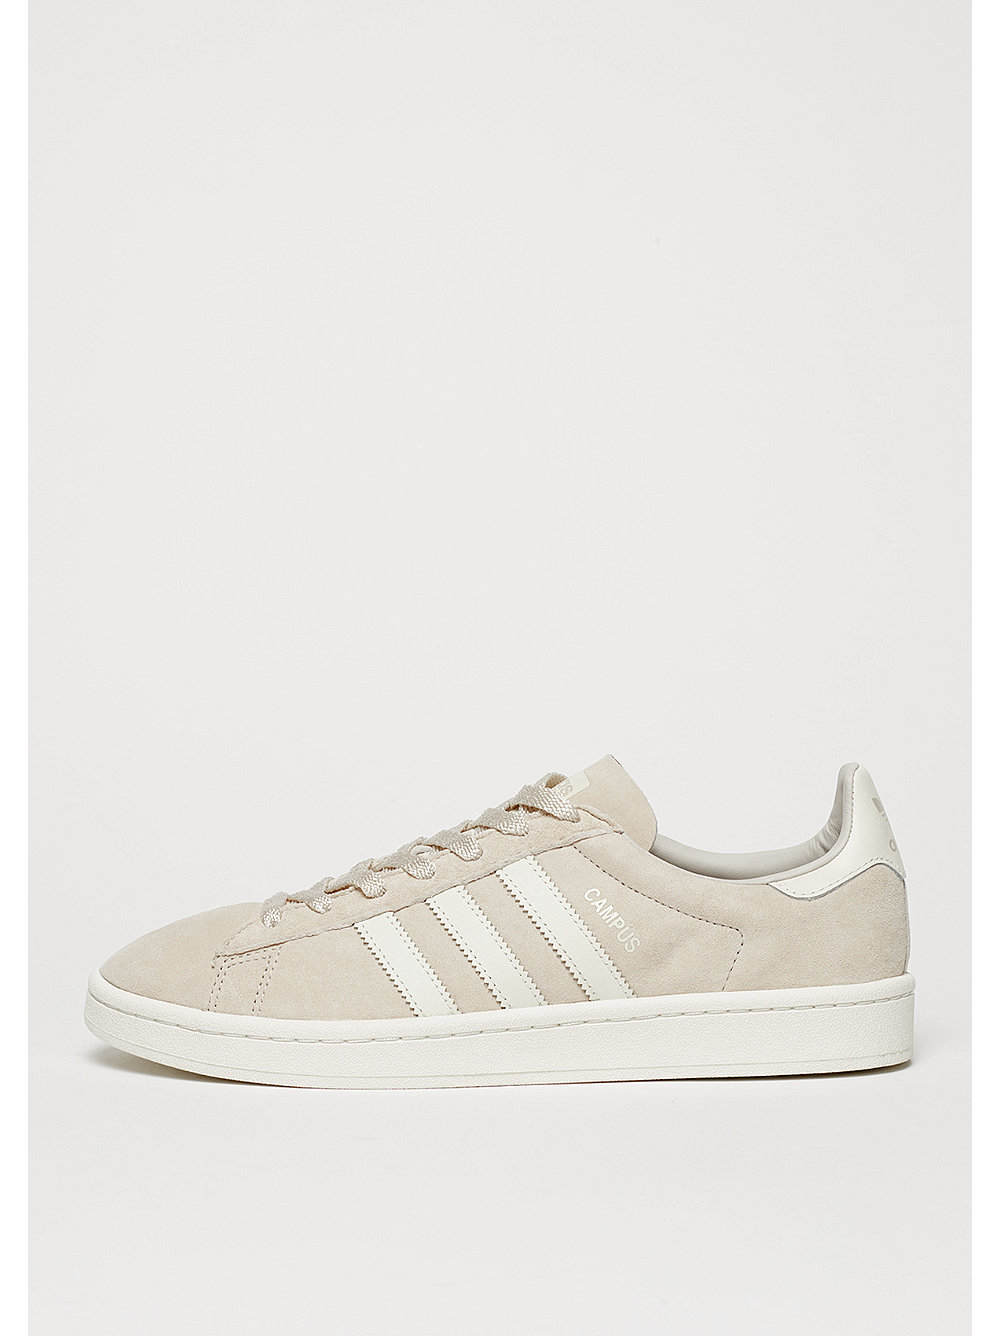 adidas Campus clear brown-off white-chalk white